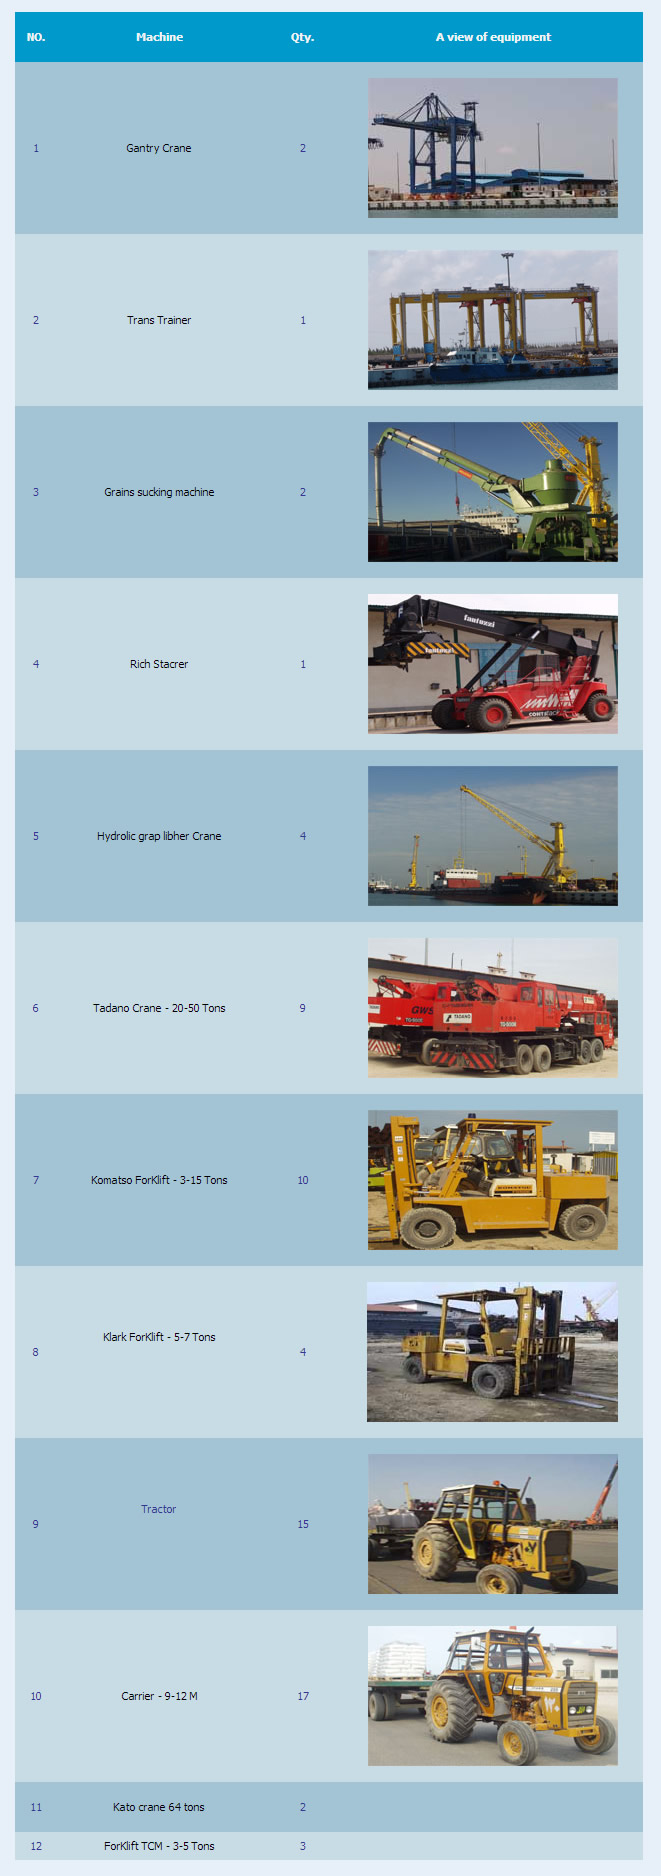 Amirabad Port Facilities Port and land equipment